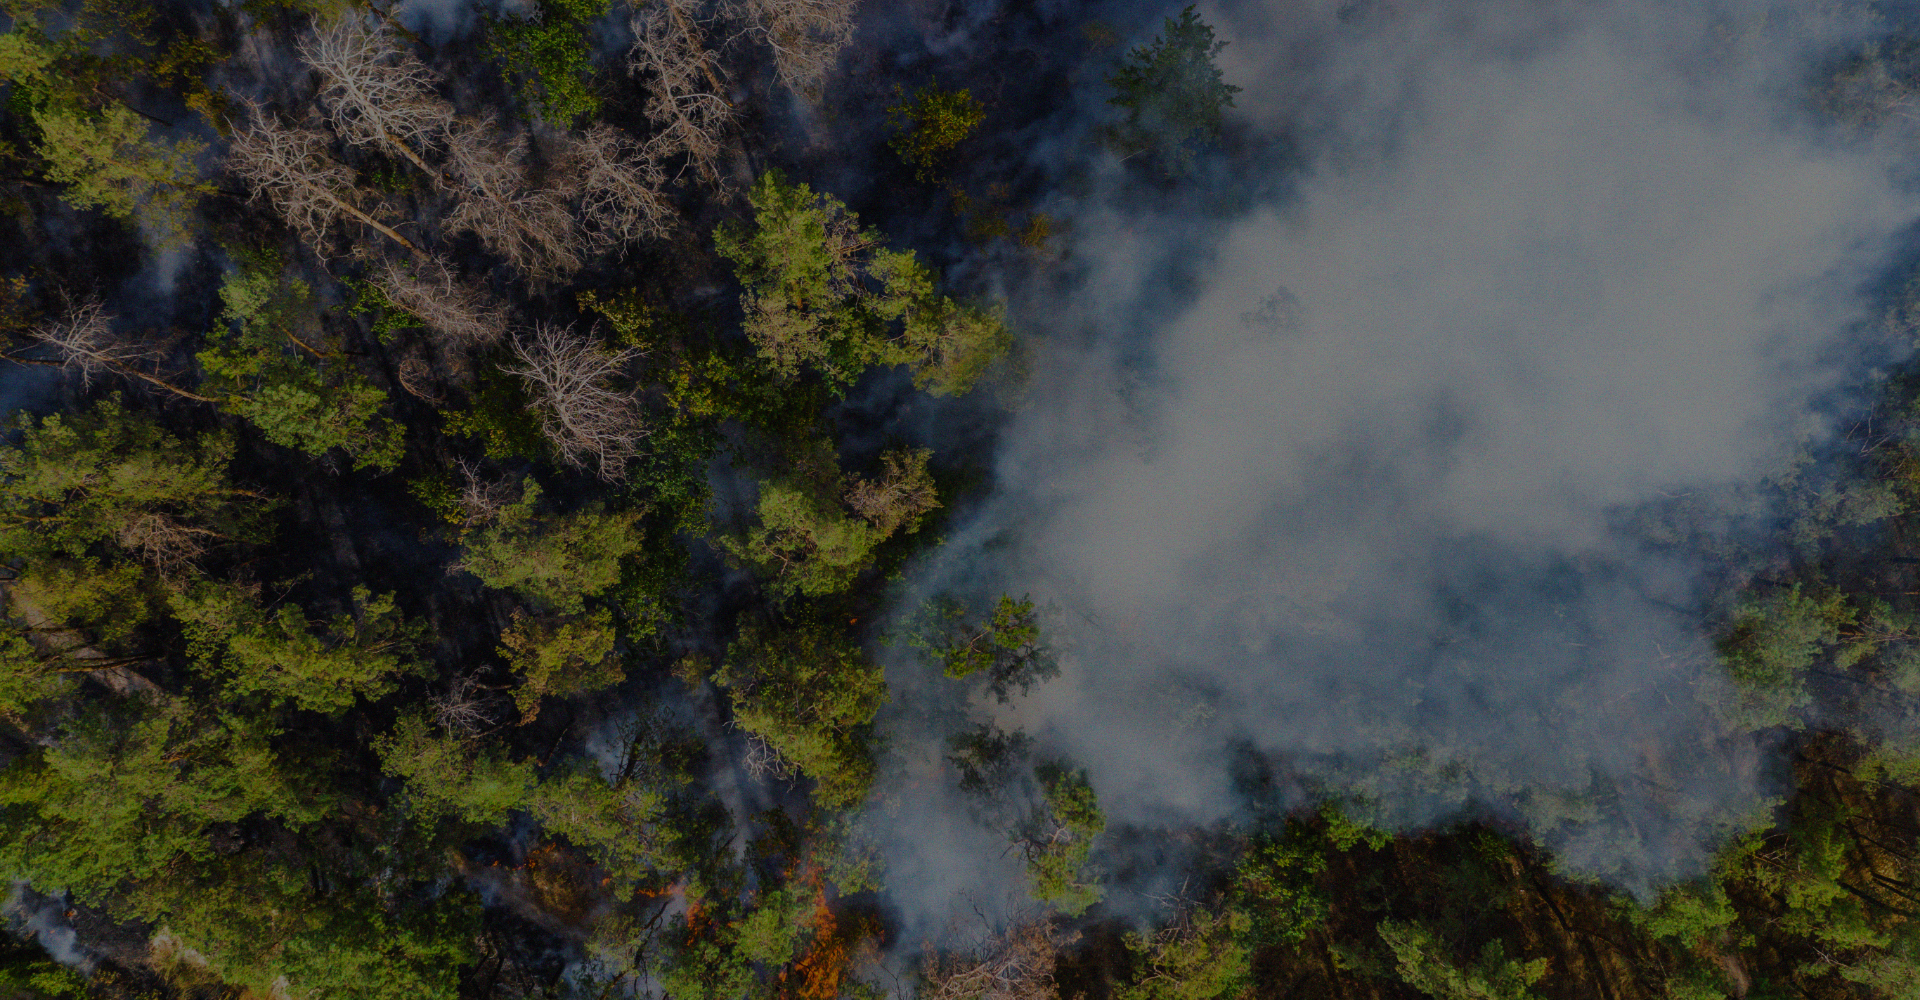 A wildfire sparked in a forest can be detected by AIIR visual anomaly detection.